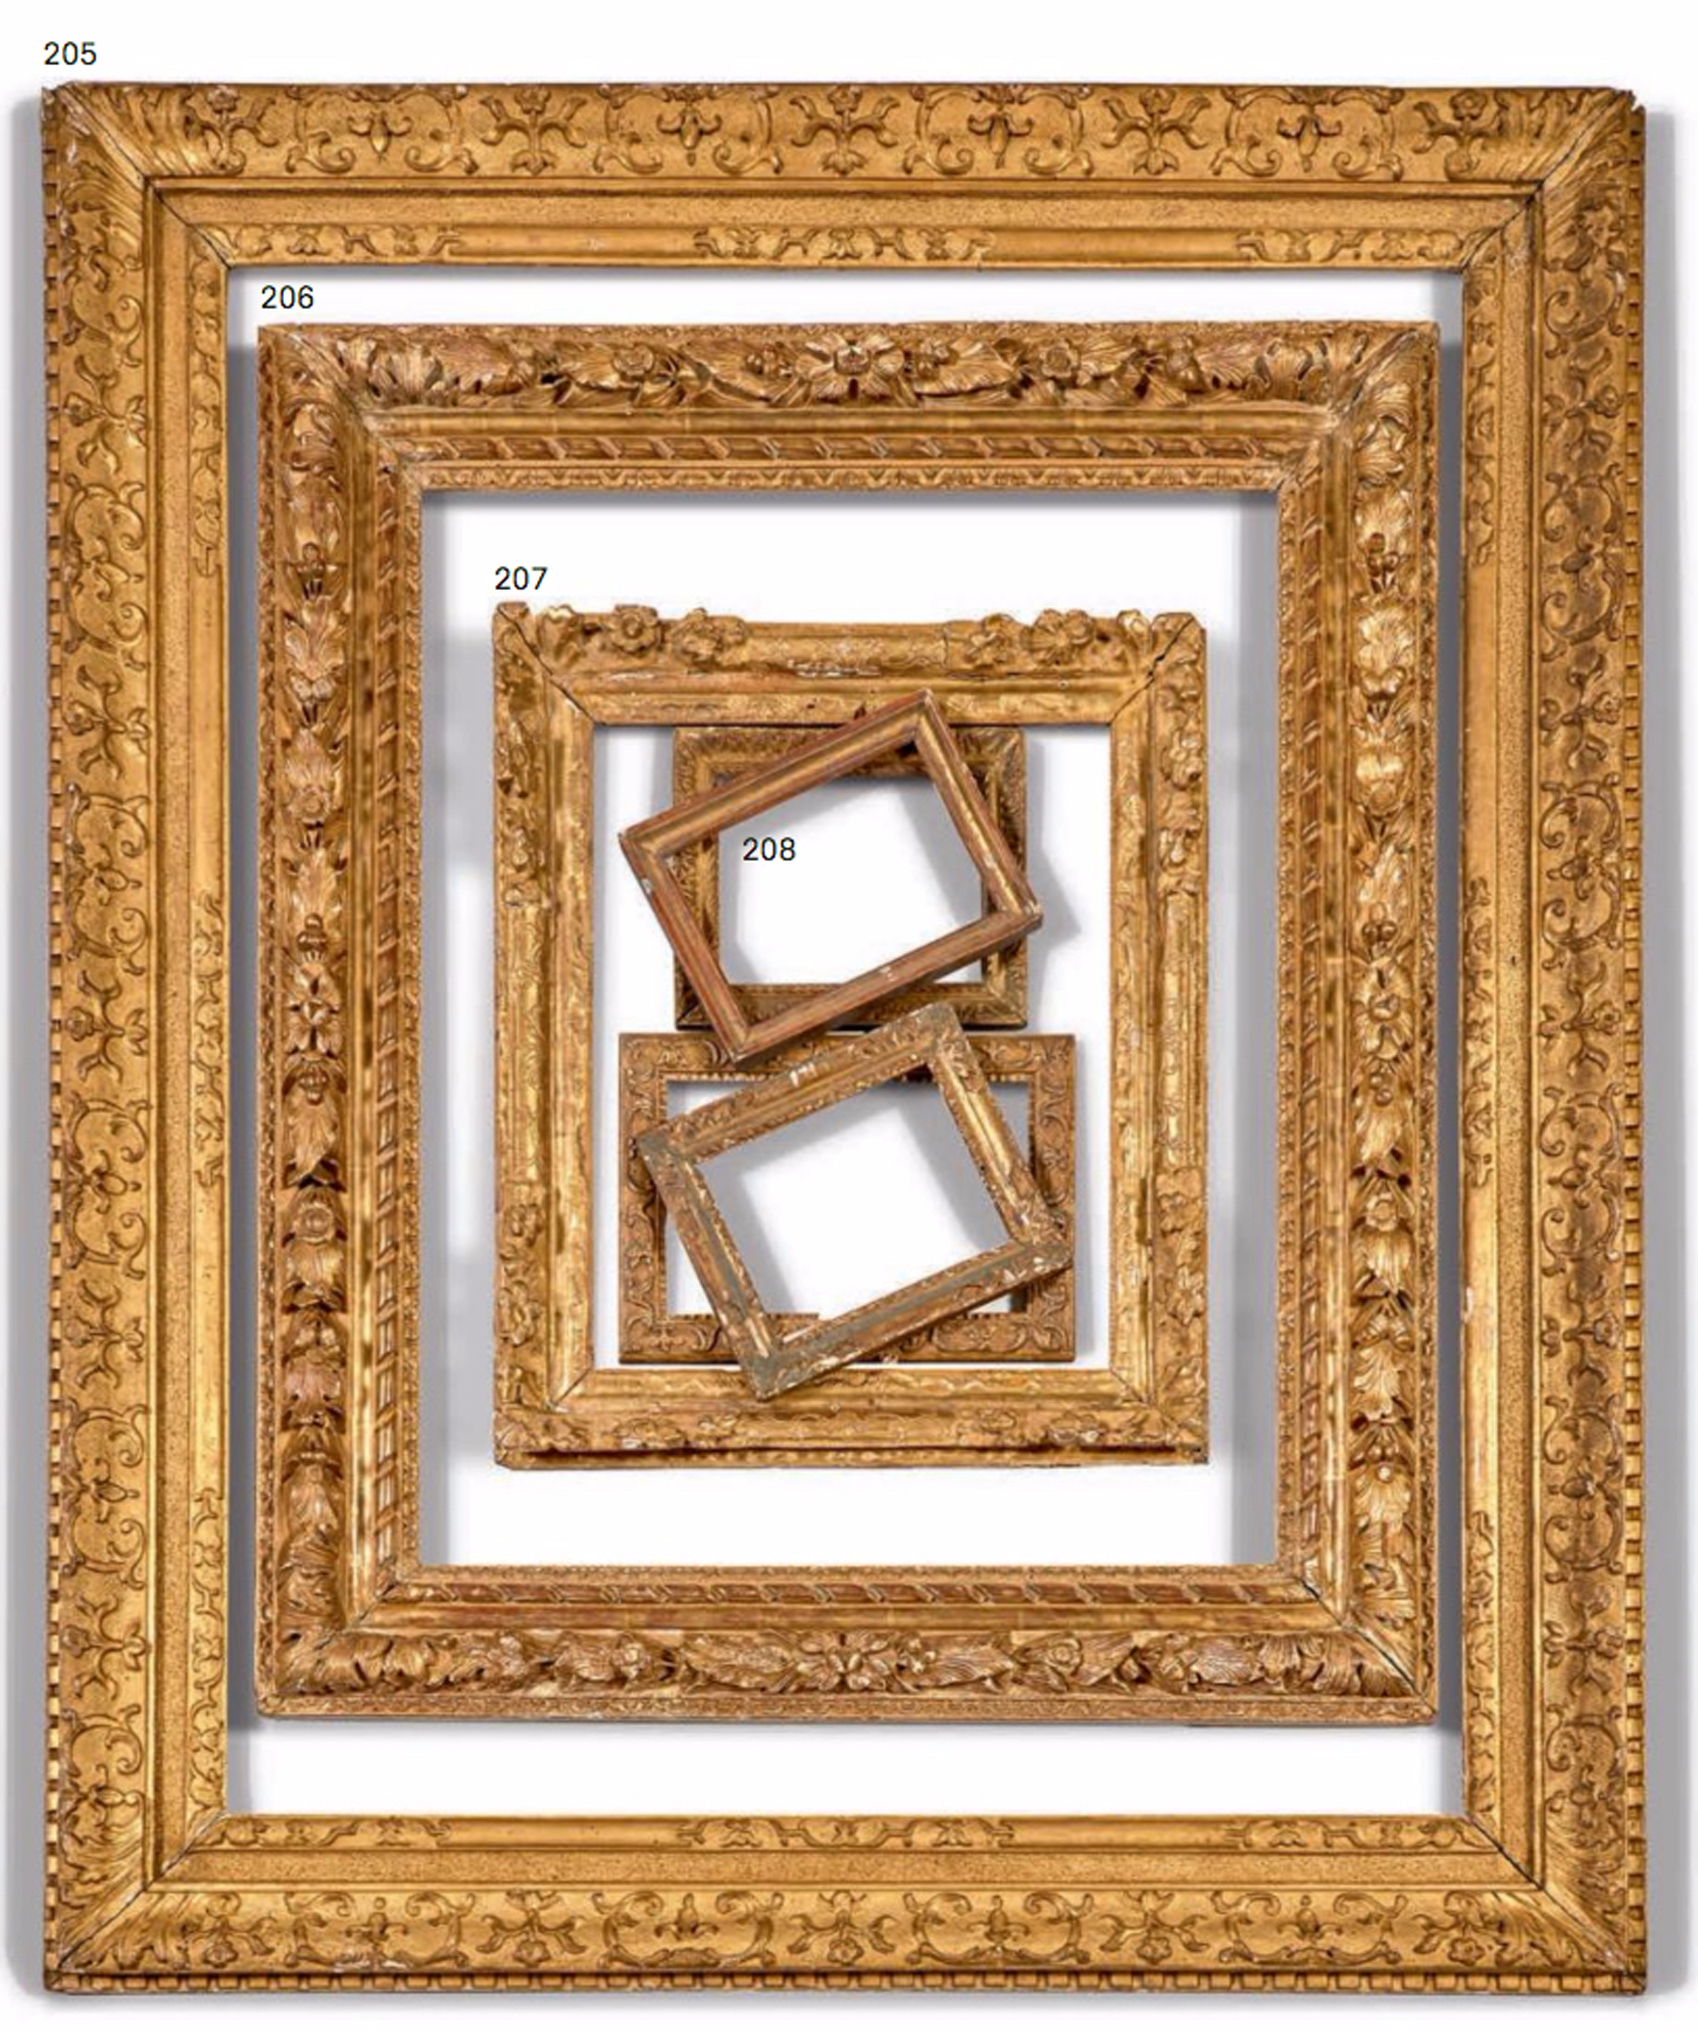 lots 205 to 208 french louis xiii and louis xiv frames 17th century